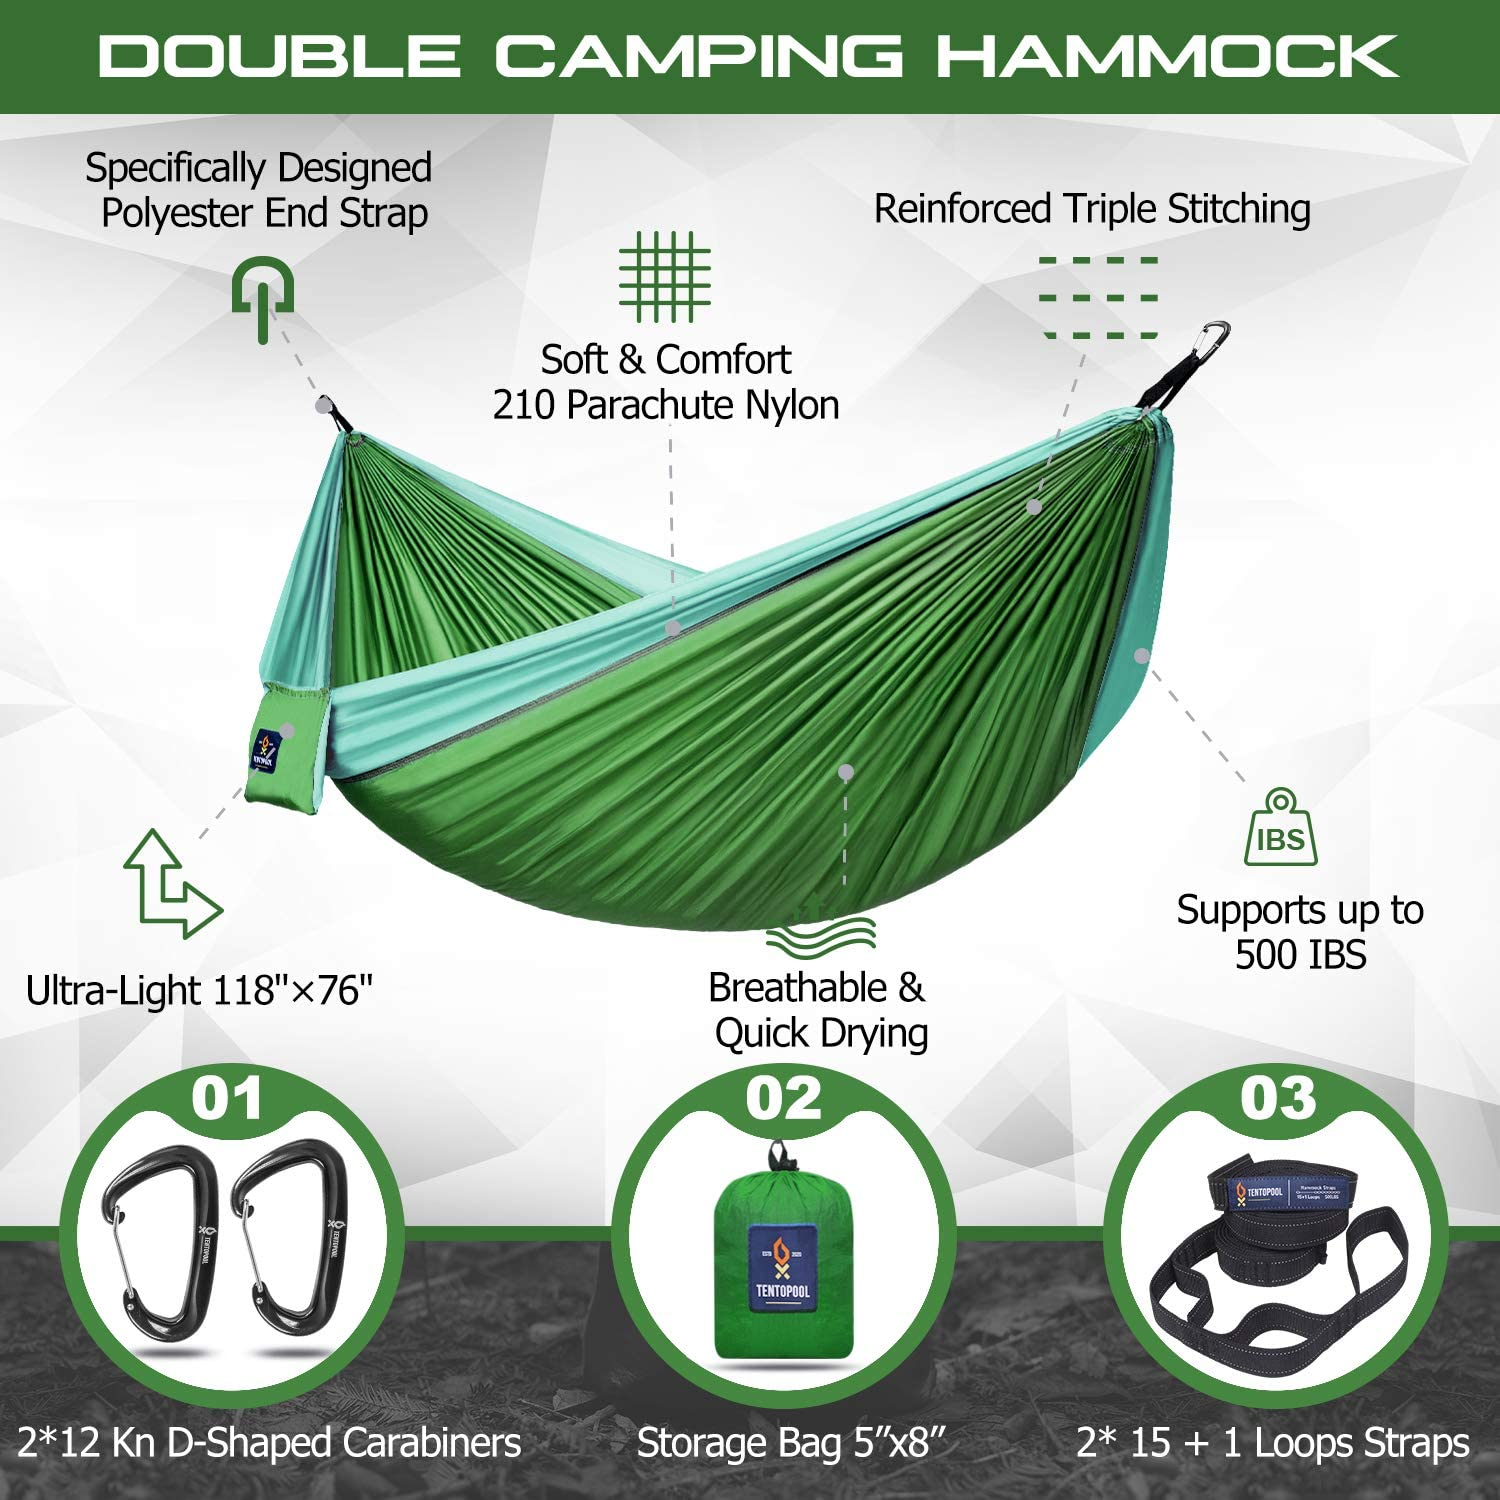 Supports up to 500 Lbs 2 Person Travel Hammock Made of 210T Nylon Parachute Fabric with 2 Reflective Nylon Tree Straps TENTOPOOL Portable Double Camping Hammock Carabiners and Pouch